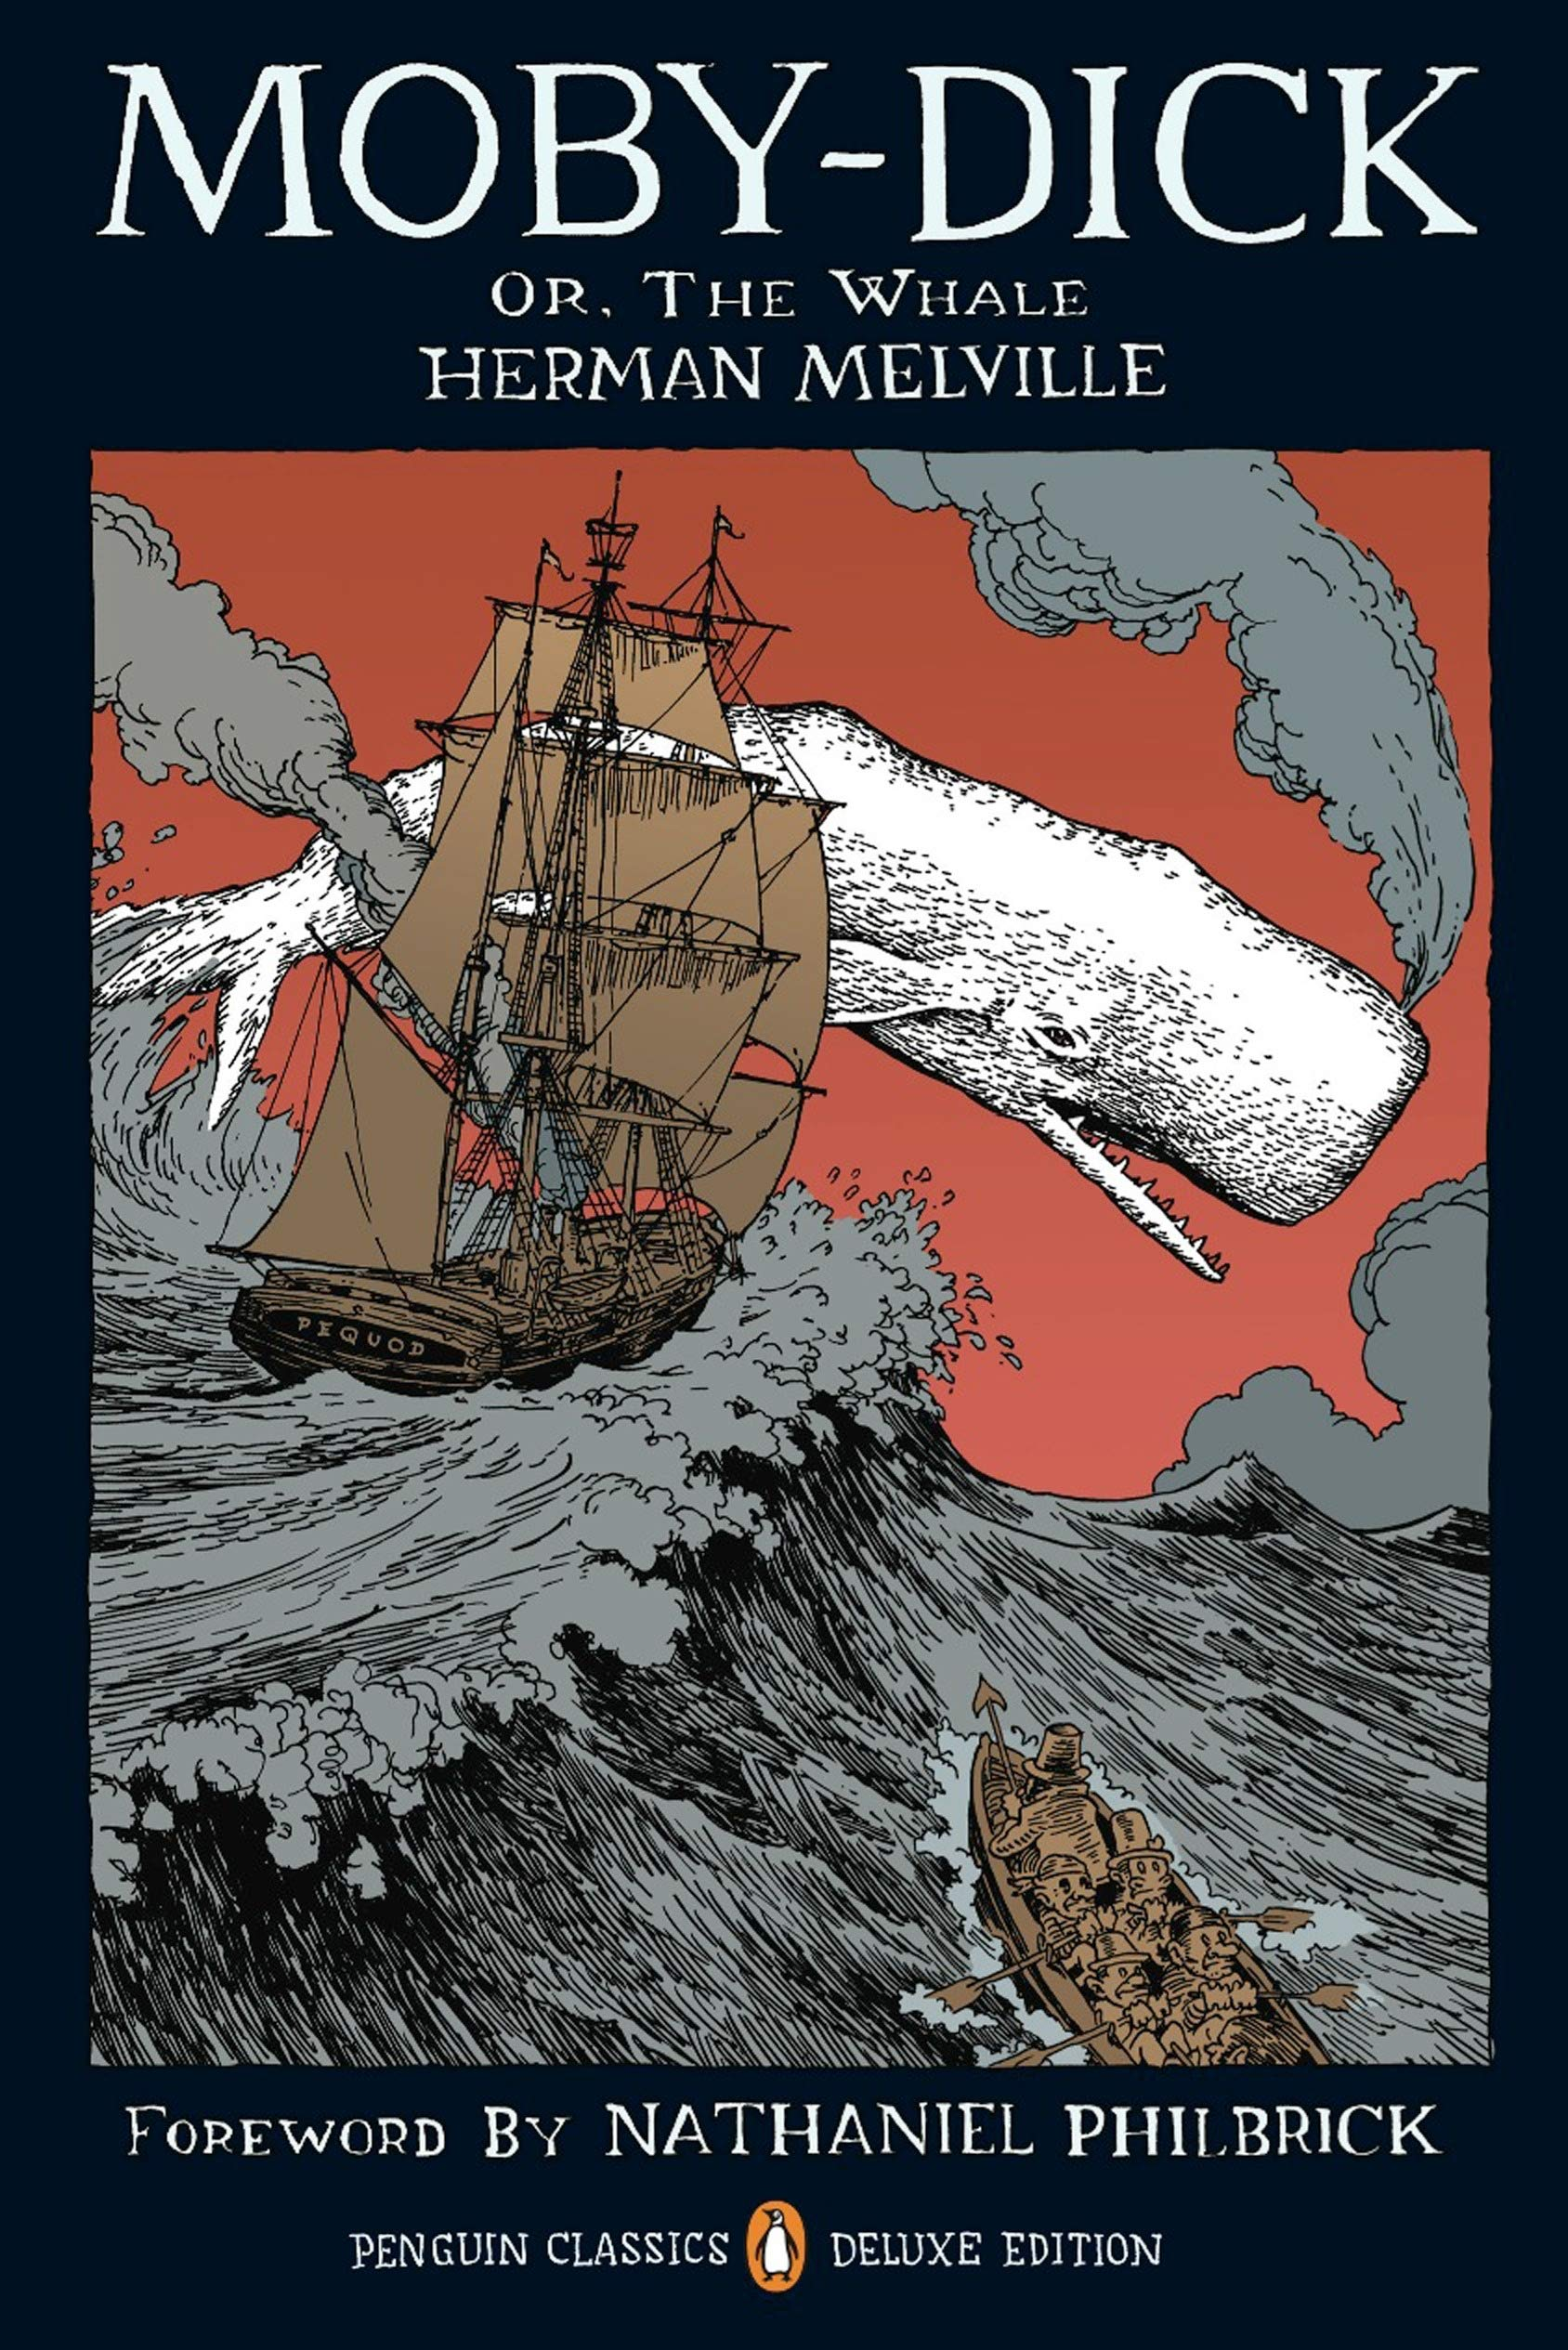 Moby-Dick: or, The Whale (Penguin Classics Deluxe Edition): Melville,  Herman, Millionaire, Tony, Philbrick, Nathaniel: 9780143105954: Amazon.com:  Books